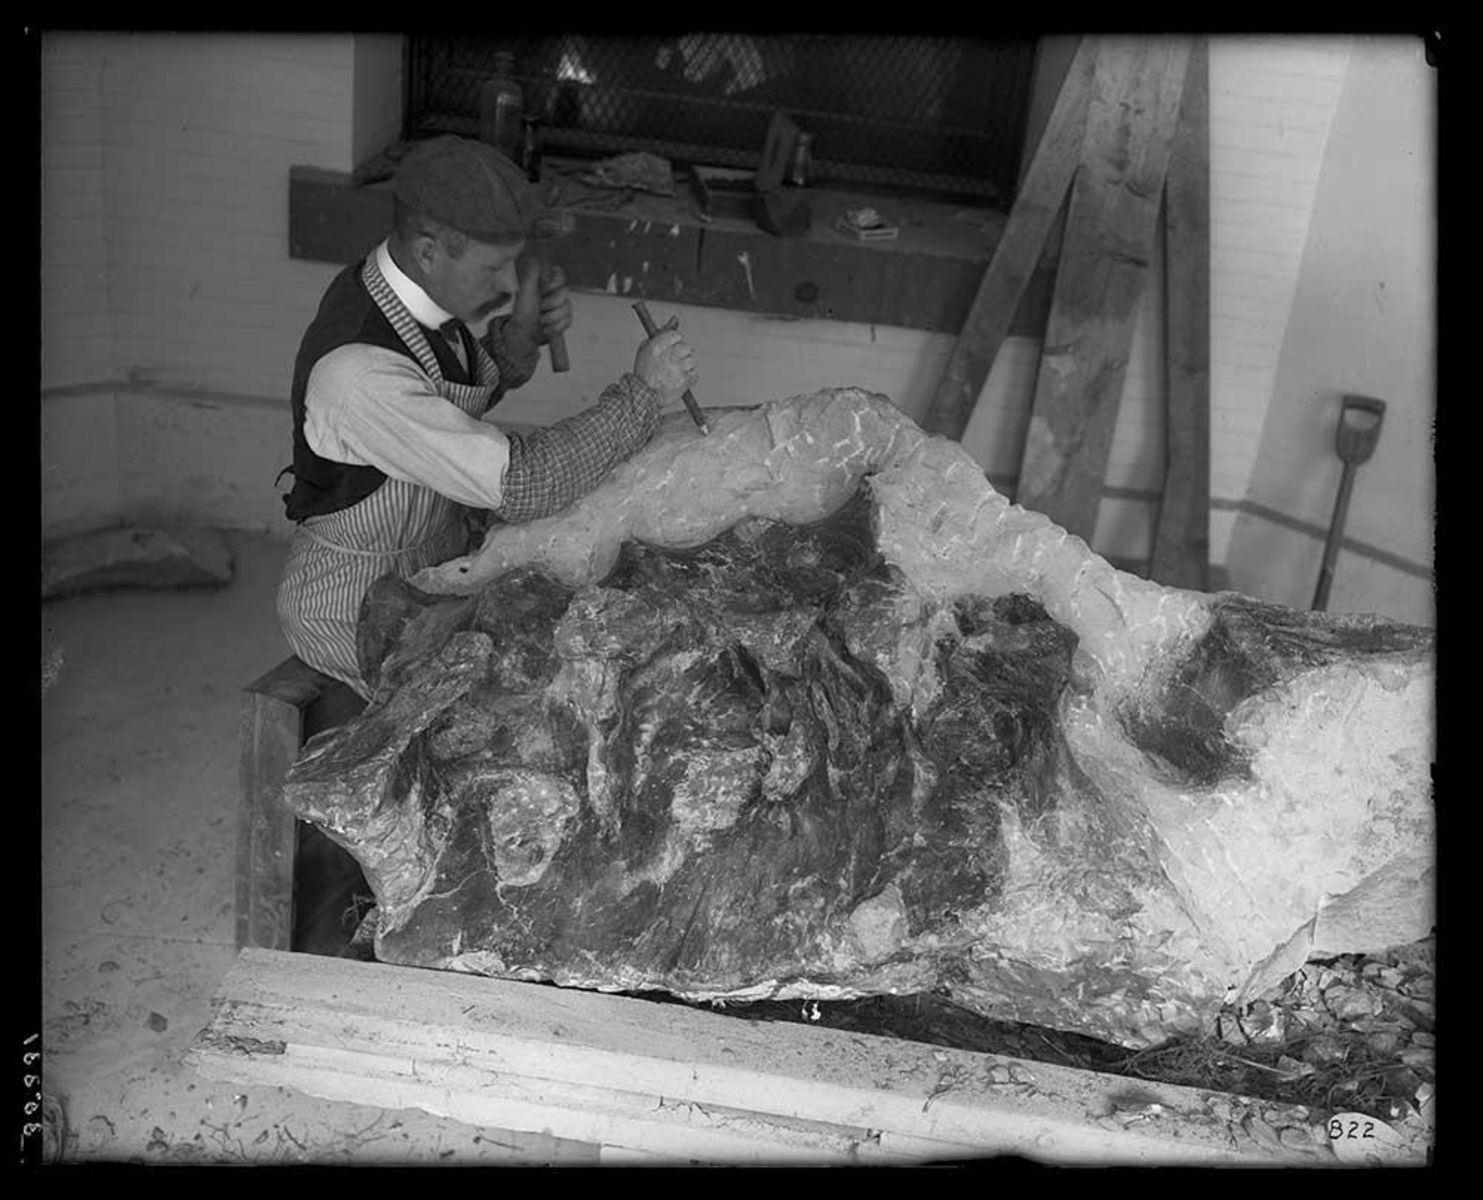 Preparing the T. rex pelvis.